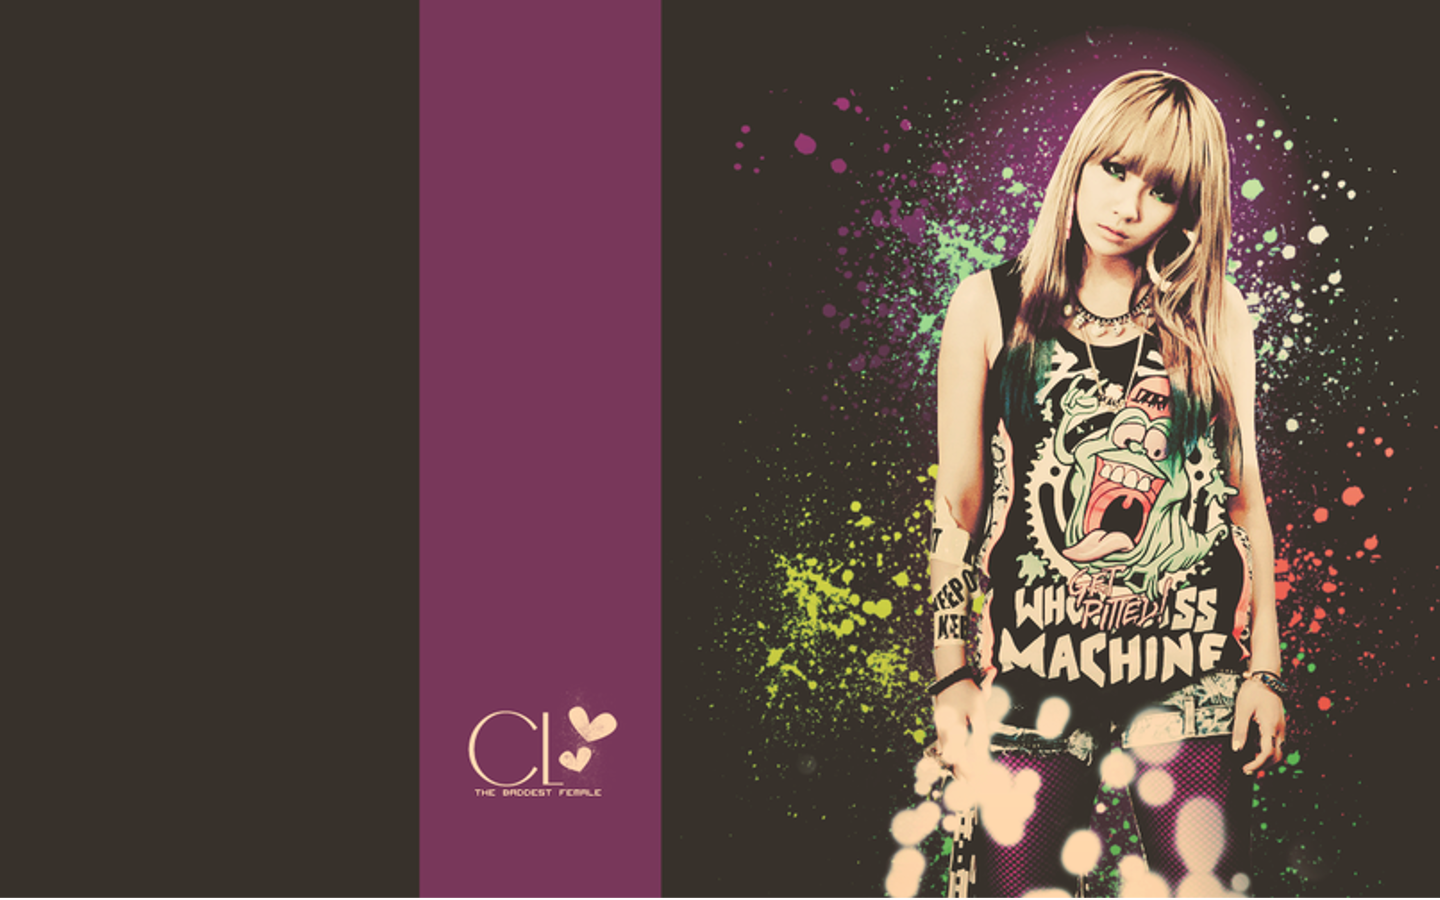 Cute Sad Baby Girl Wallpaper 2ne1 Hd Wallpapers Most Beautiful Places In The World